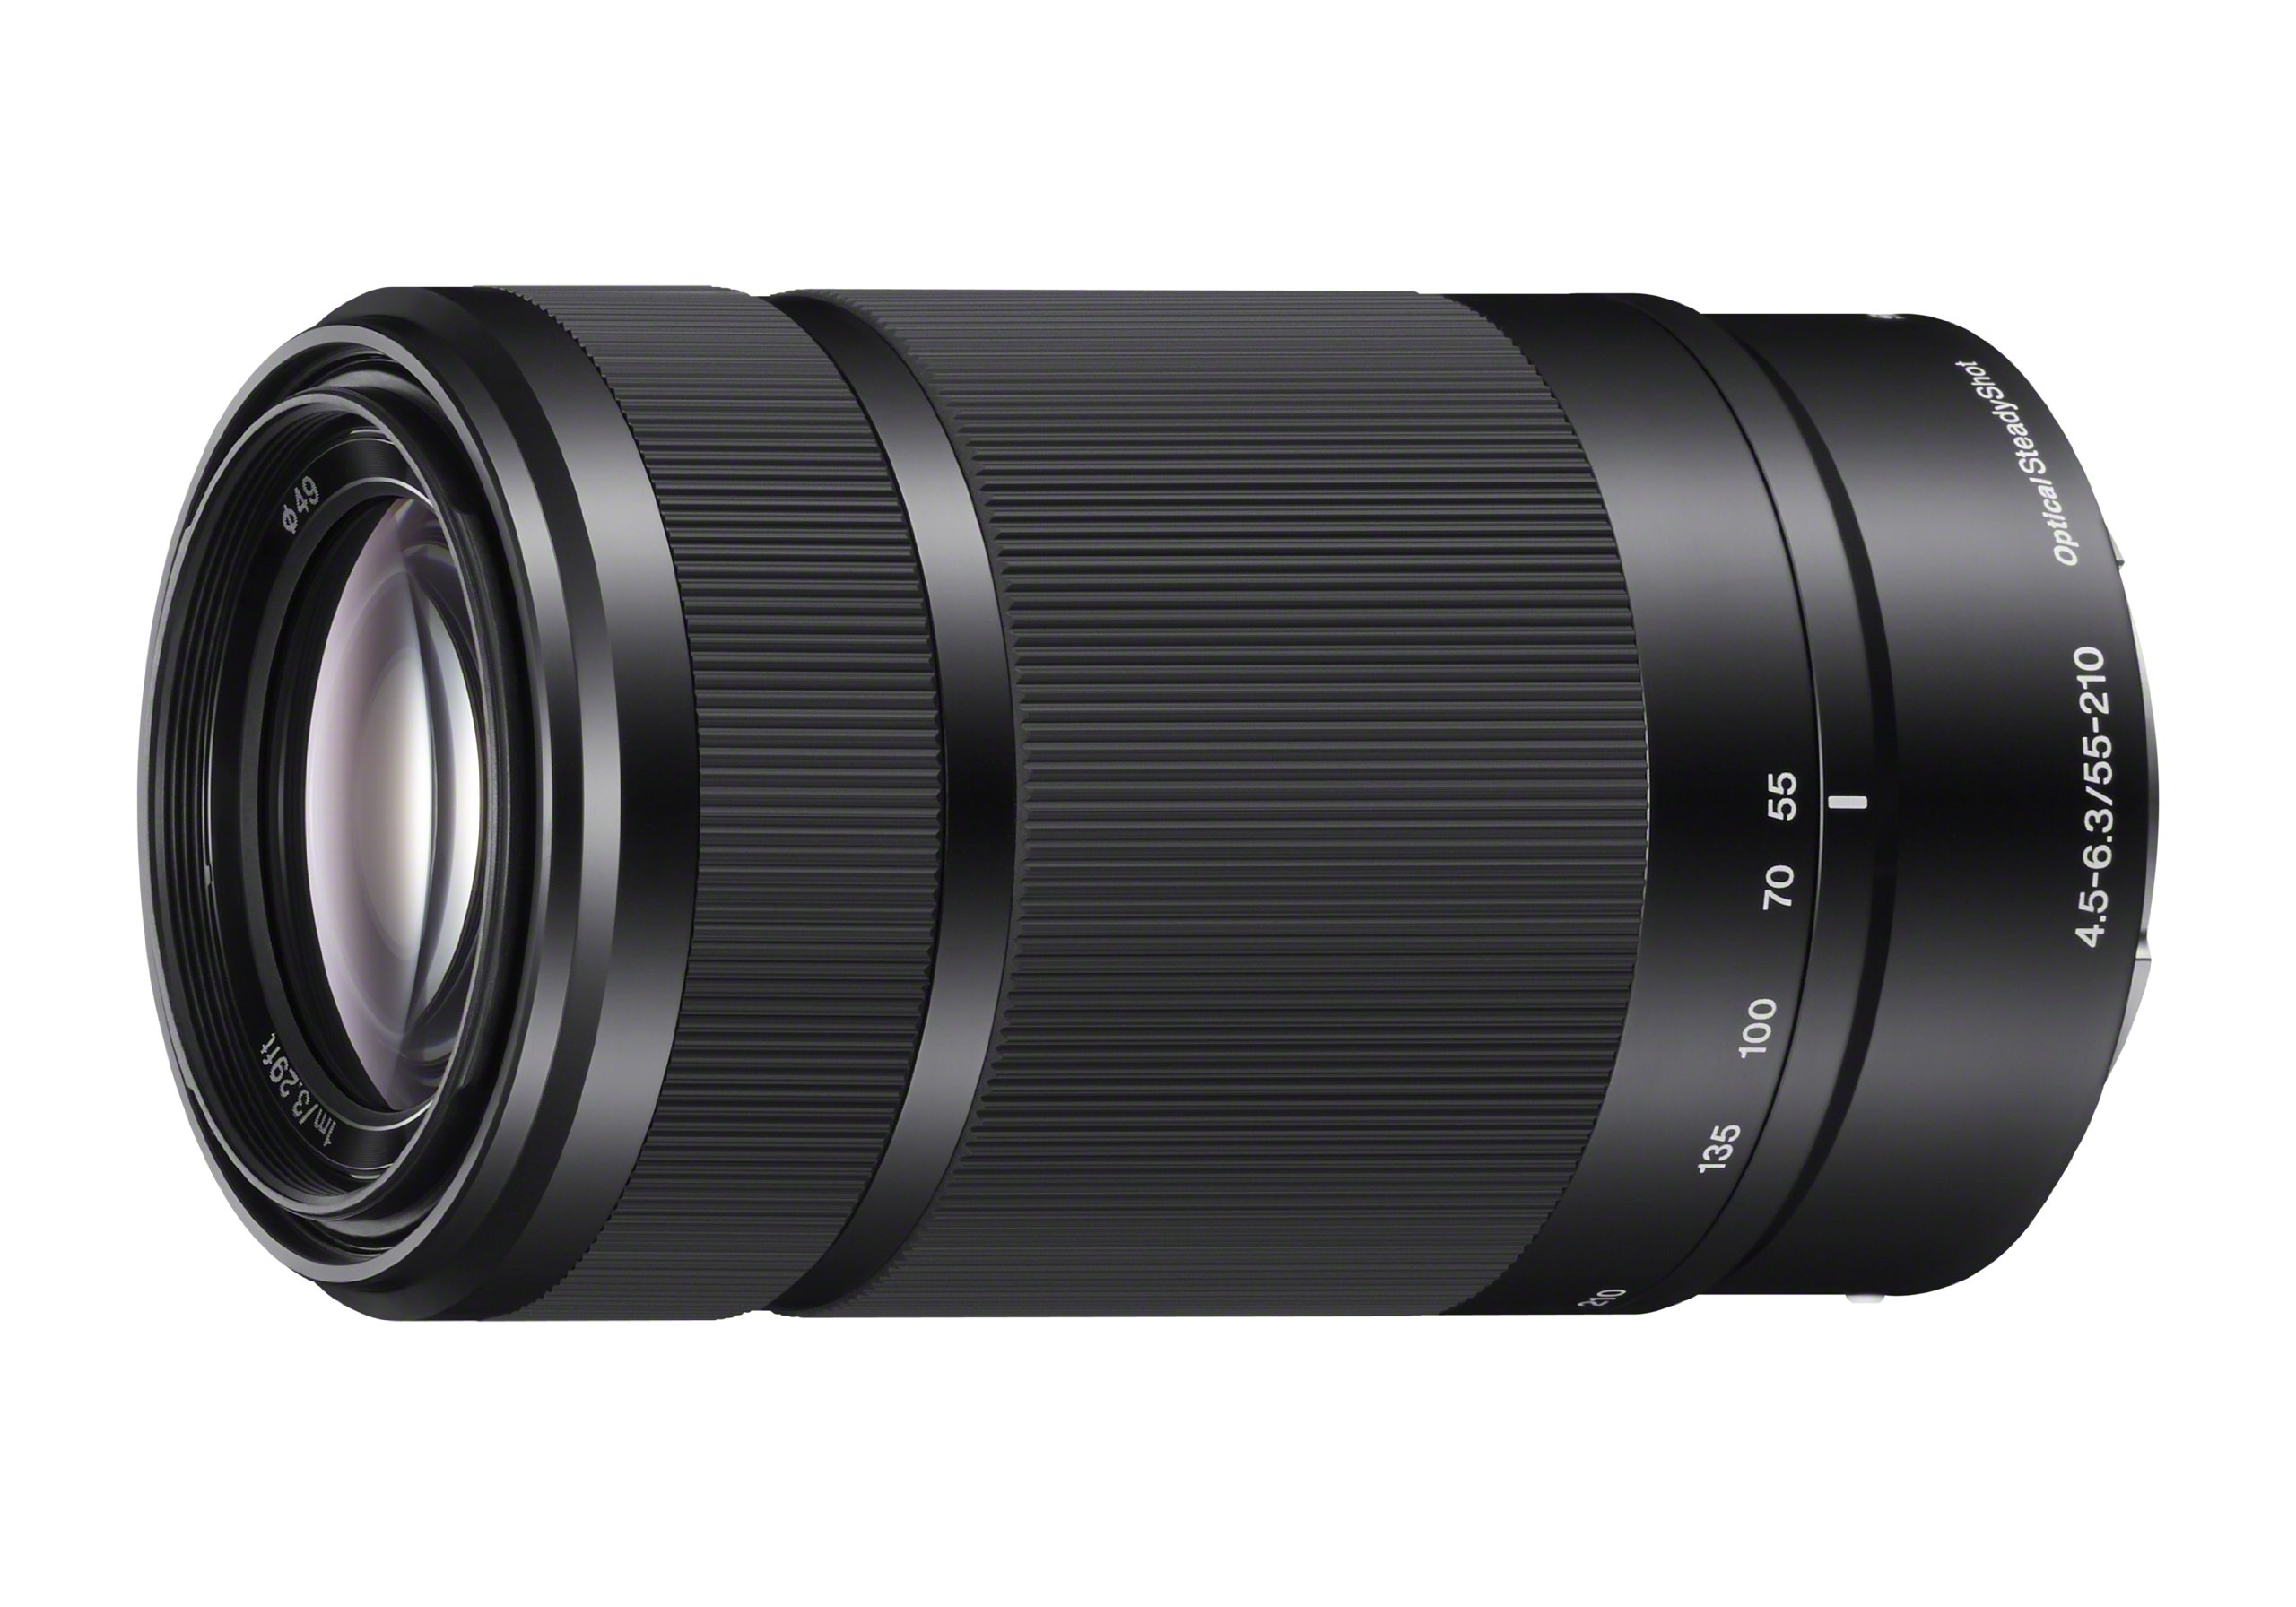 Sony E 55-210mm F4.5-6.3 Lens for Sony E-Mount Cameras (Black) by Sony (Image #1)